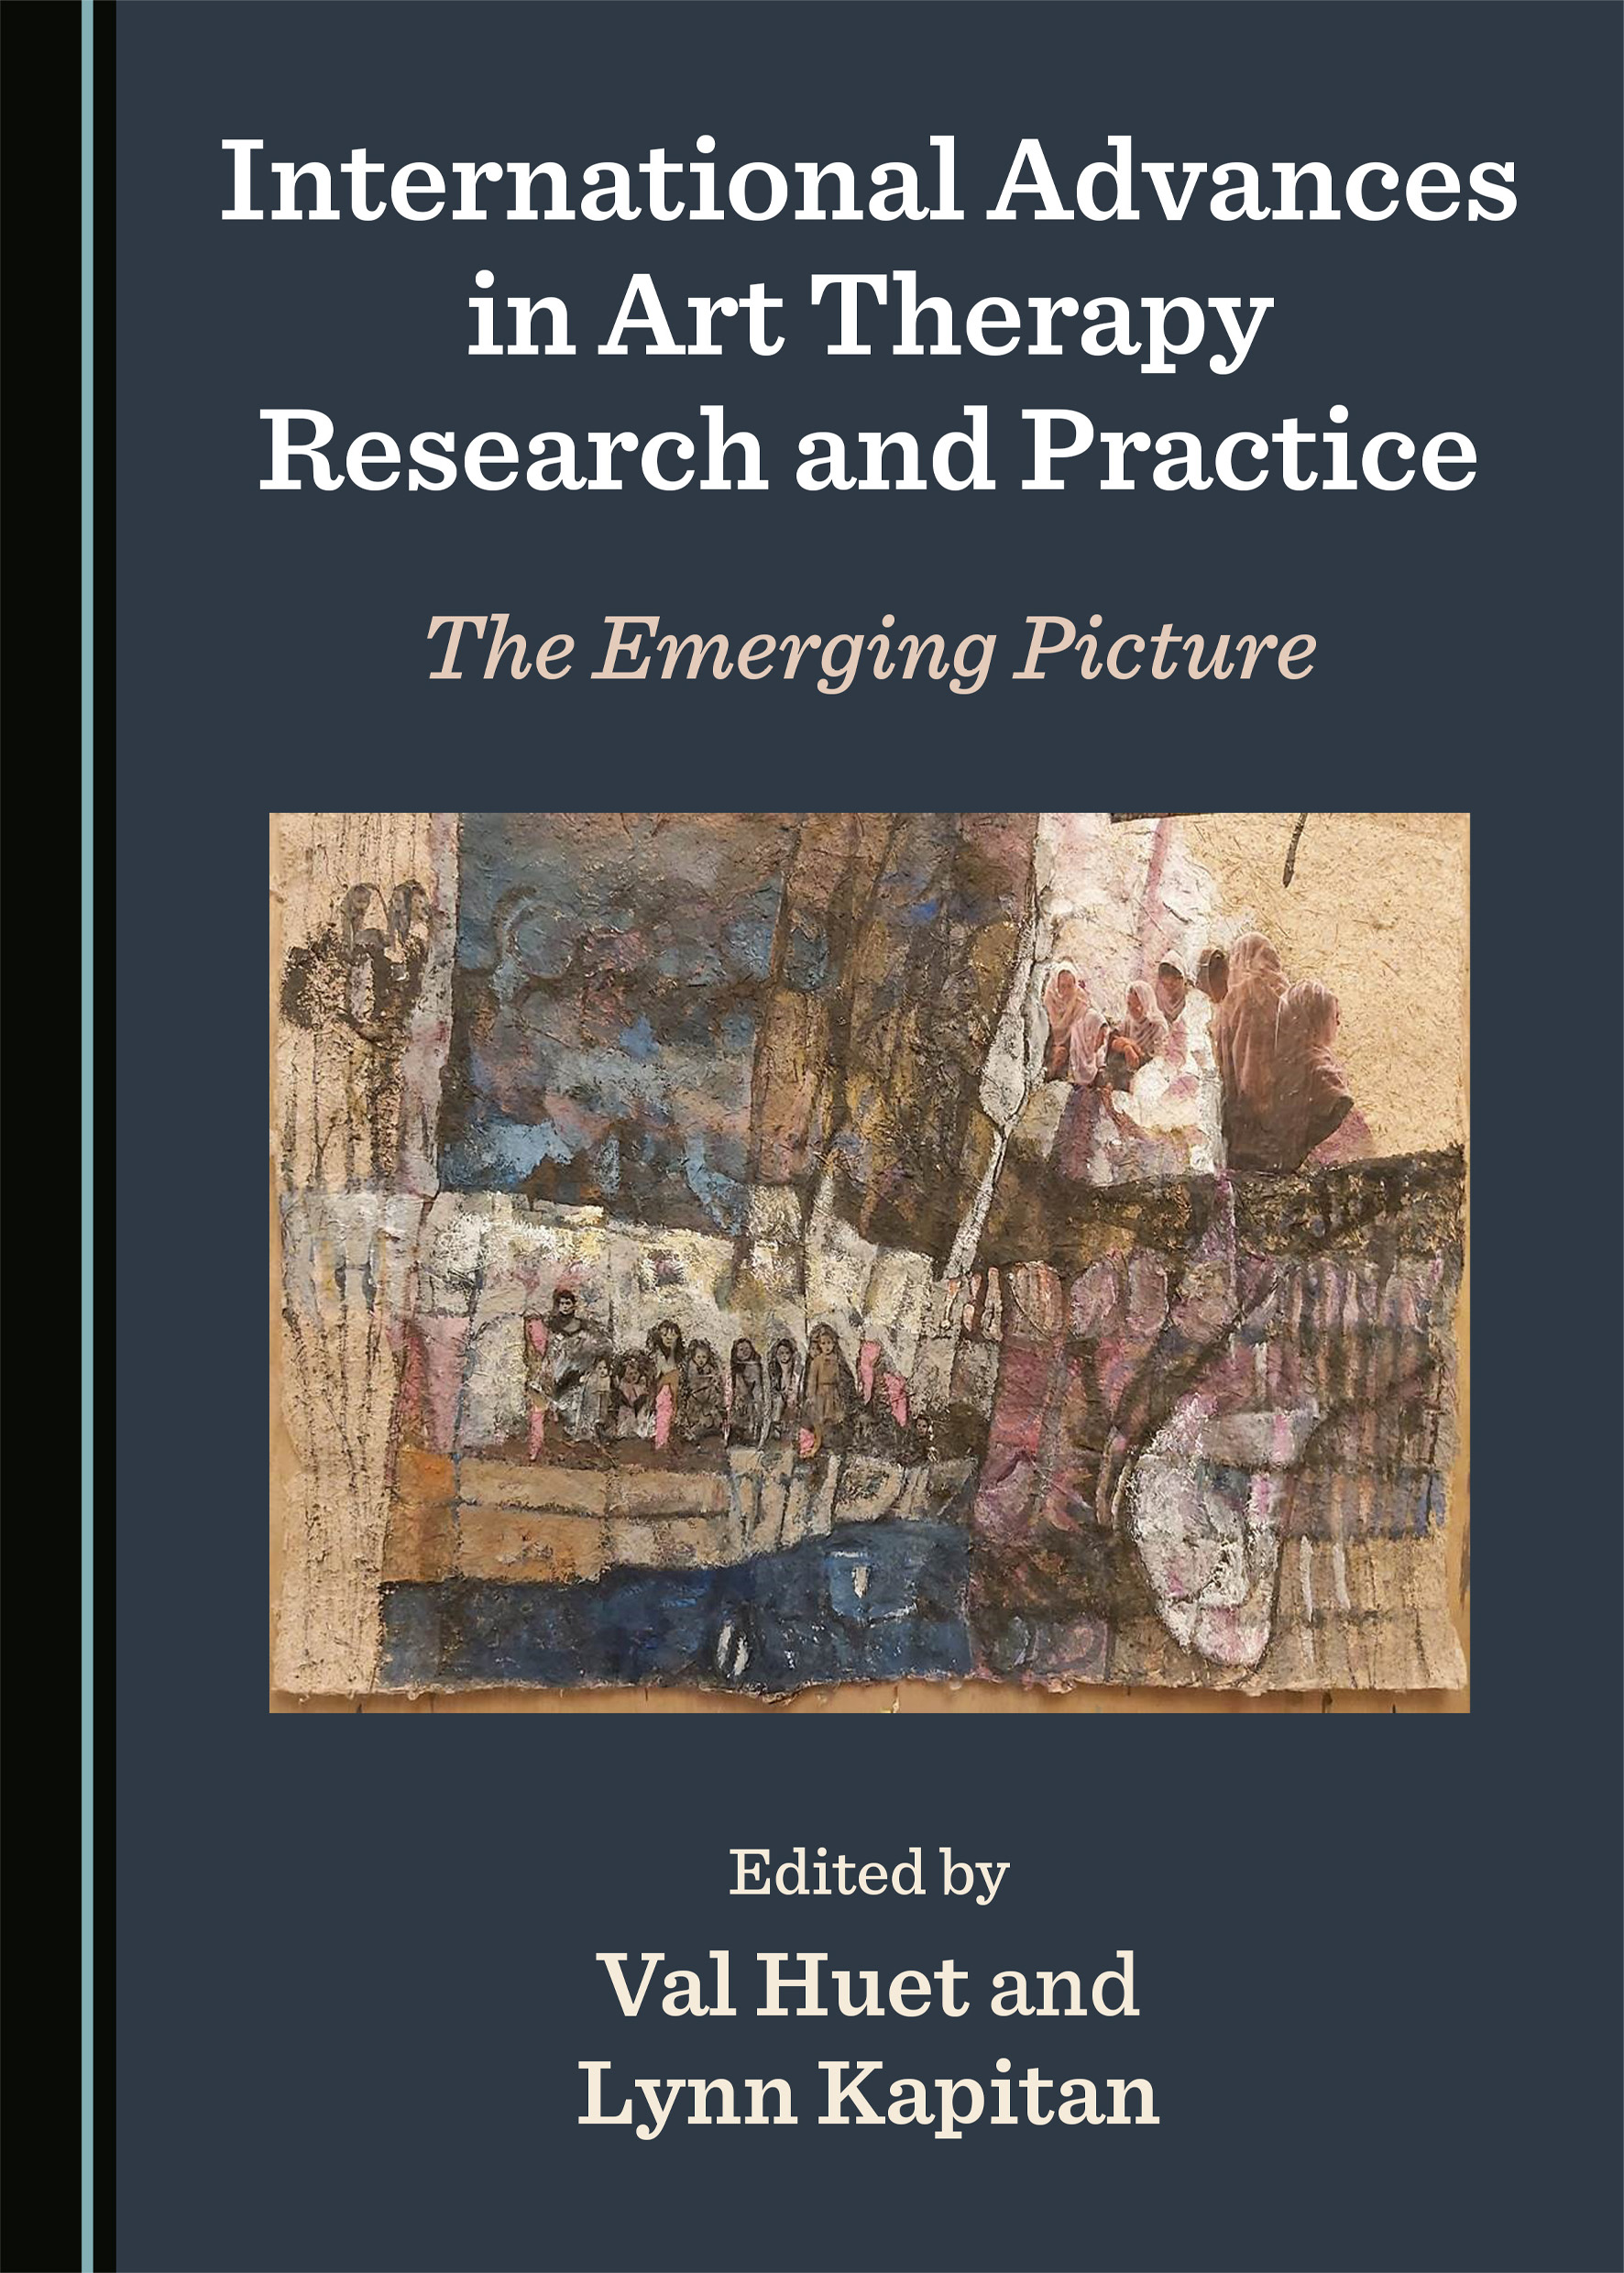 International Advances in Art Therapy Research and Practice: The Emerging Picture